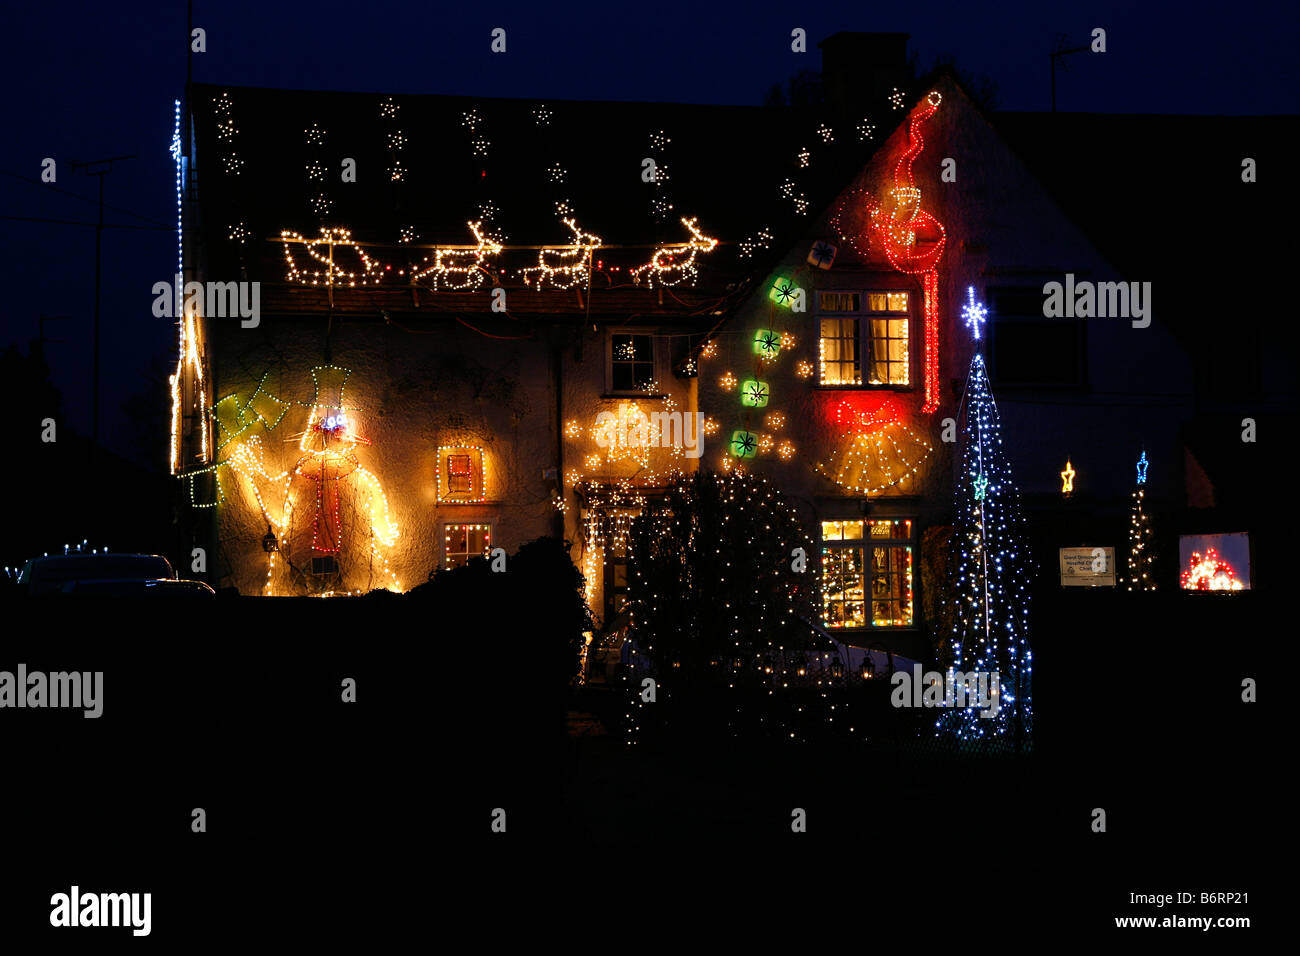 A house in South Heath, Buckinghamshire, England lit up with festive lights to celebrate the Christmas holiday - Stock Image